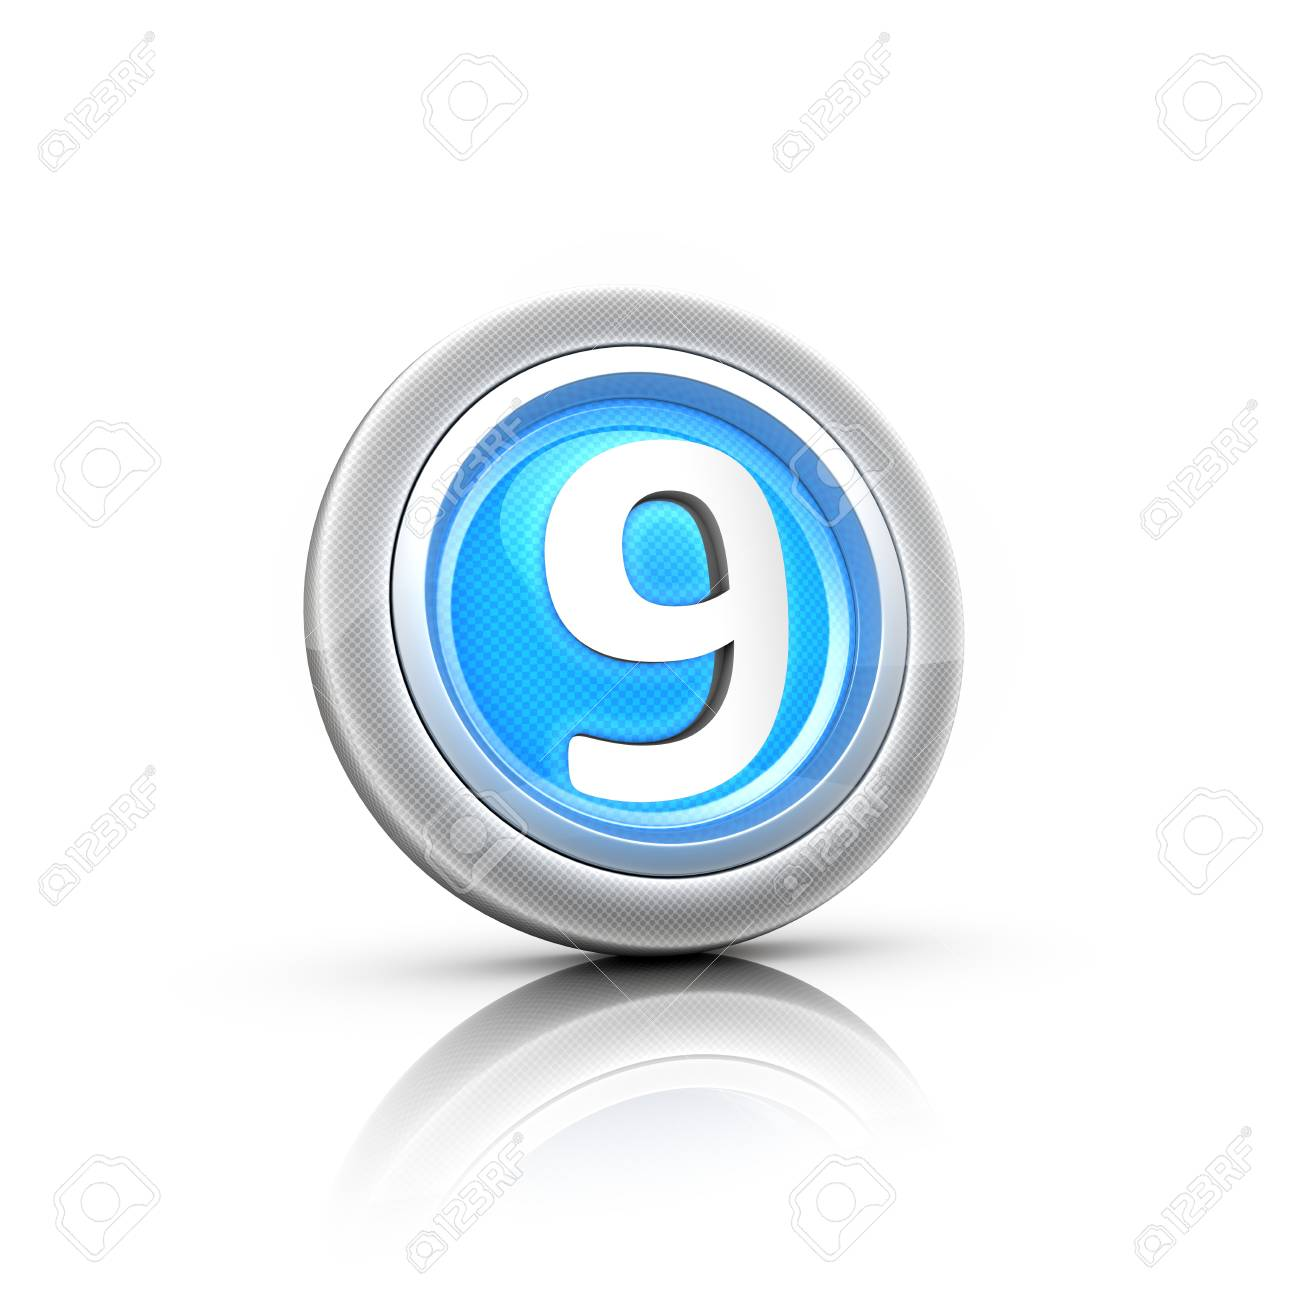 Button with digital label Stock Photo - 18481400